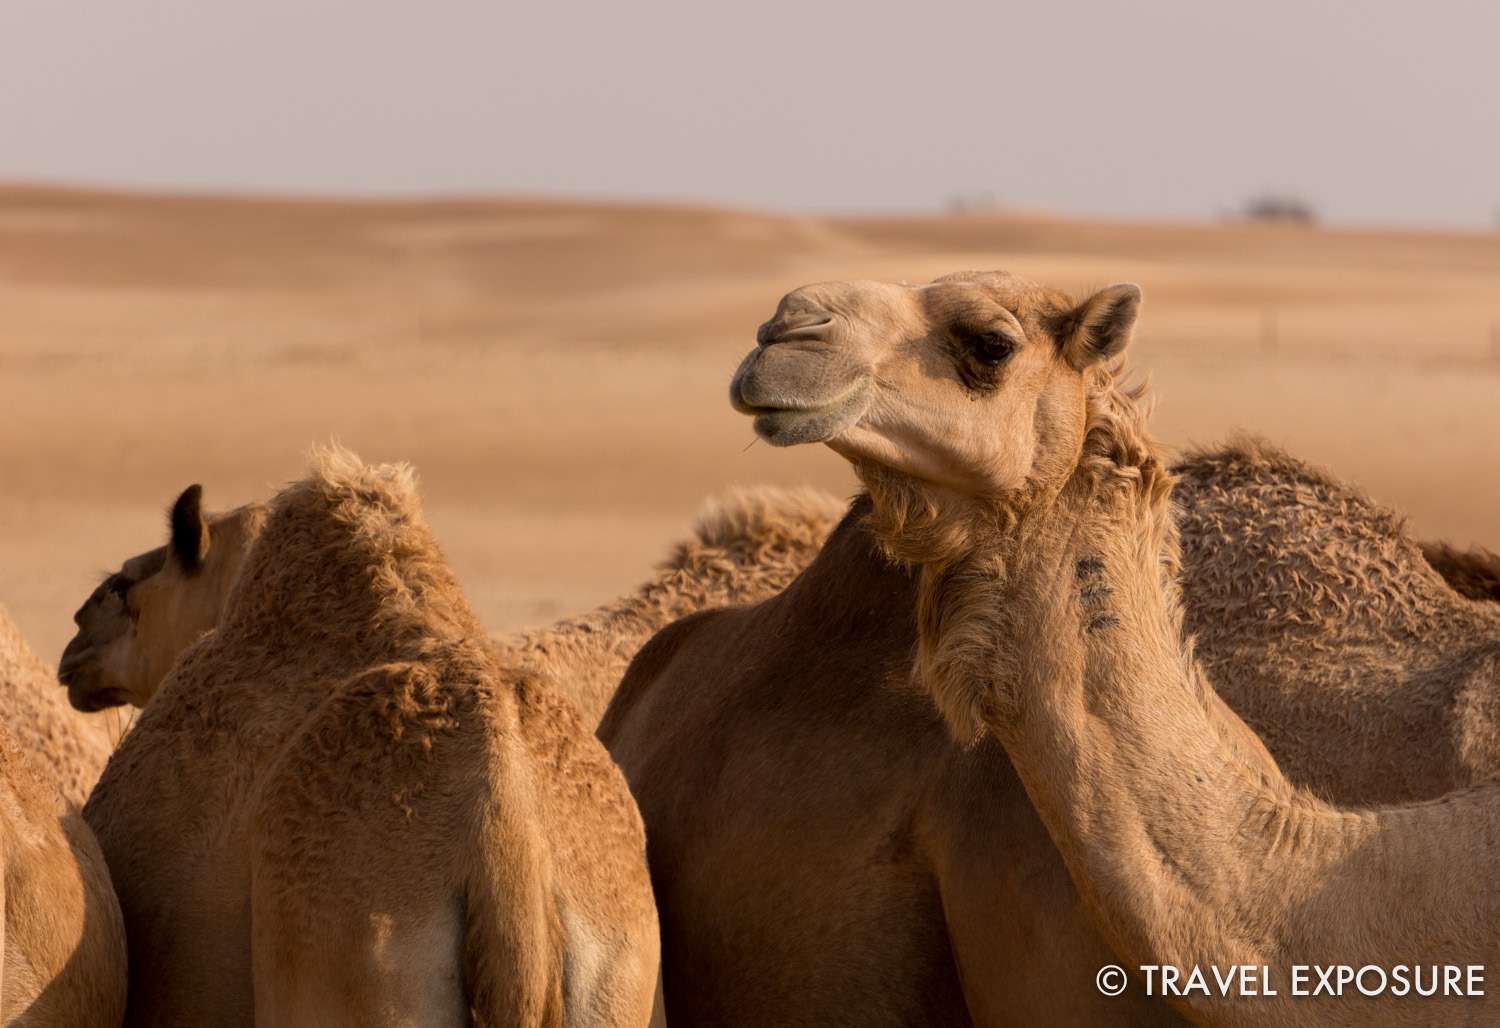 Camels in the desert near Abu Dhabi.